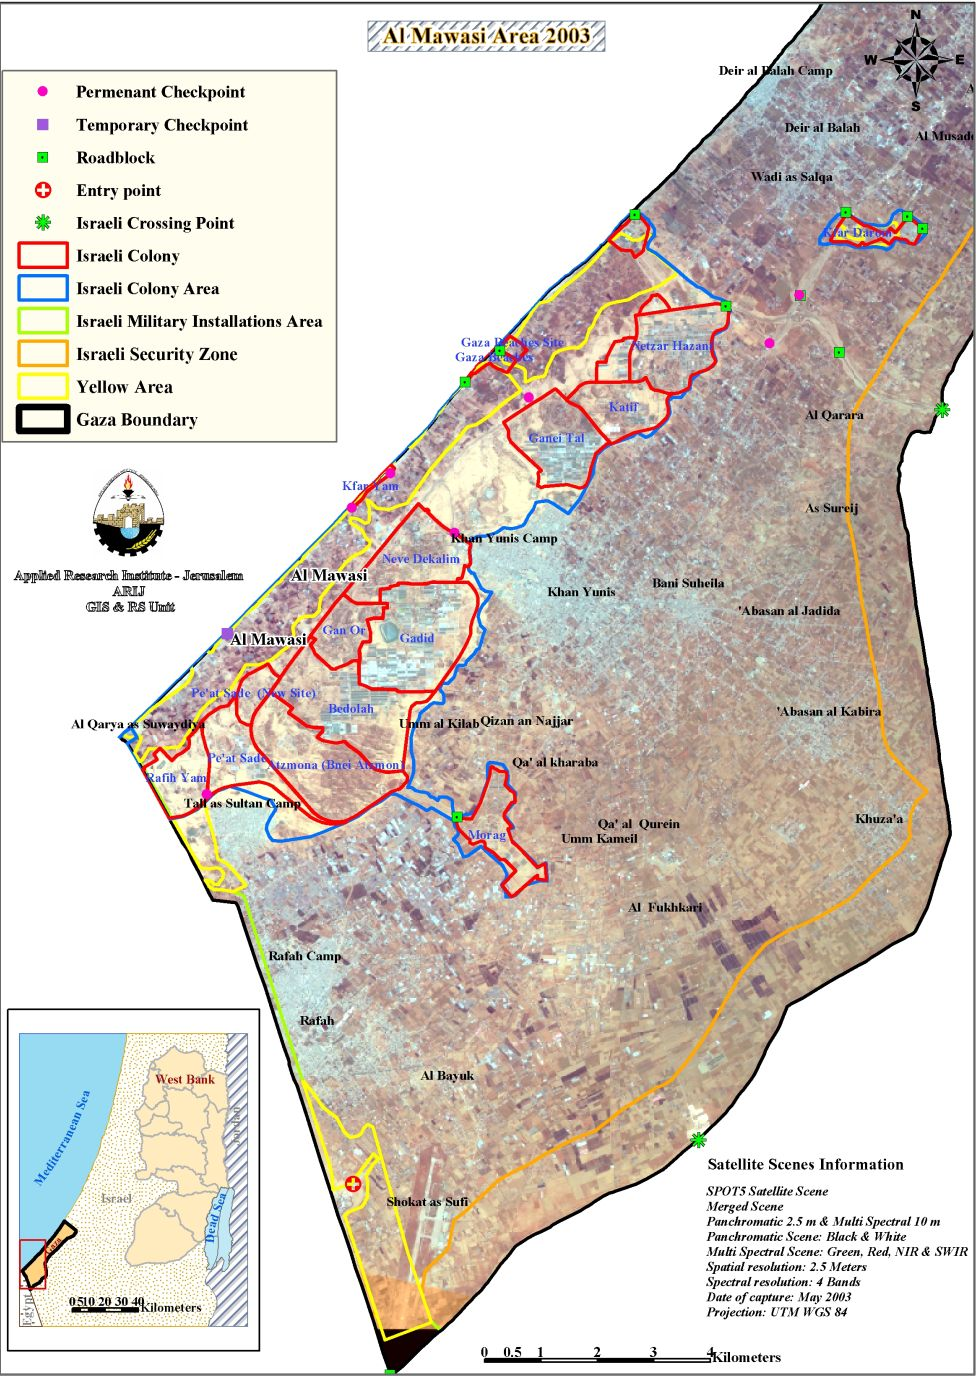 An ysis on the recent geopolitical situation in the Gaza ... Gaza Strip Map on palestinian people, sea of galilee, oman map, tel aviv, plateau of iran map, yasser arafat, himalayas map, palestinian territories, east jerusalem, bangladesh map, greece map, united kingdom map, world map, jordan river, morocco map, middle east political map, west bank, six-day war, western sahara map, indonesia map, sinai peninsula map, ethiopia map, iberian peninsula map, yom kippur war, austria map, golan heights, iudaea province map, philippines map, jerusalem map, oslo accords, yemen map, sinai peninsula, western wall, portugal map,